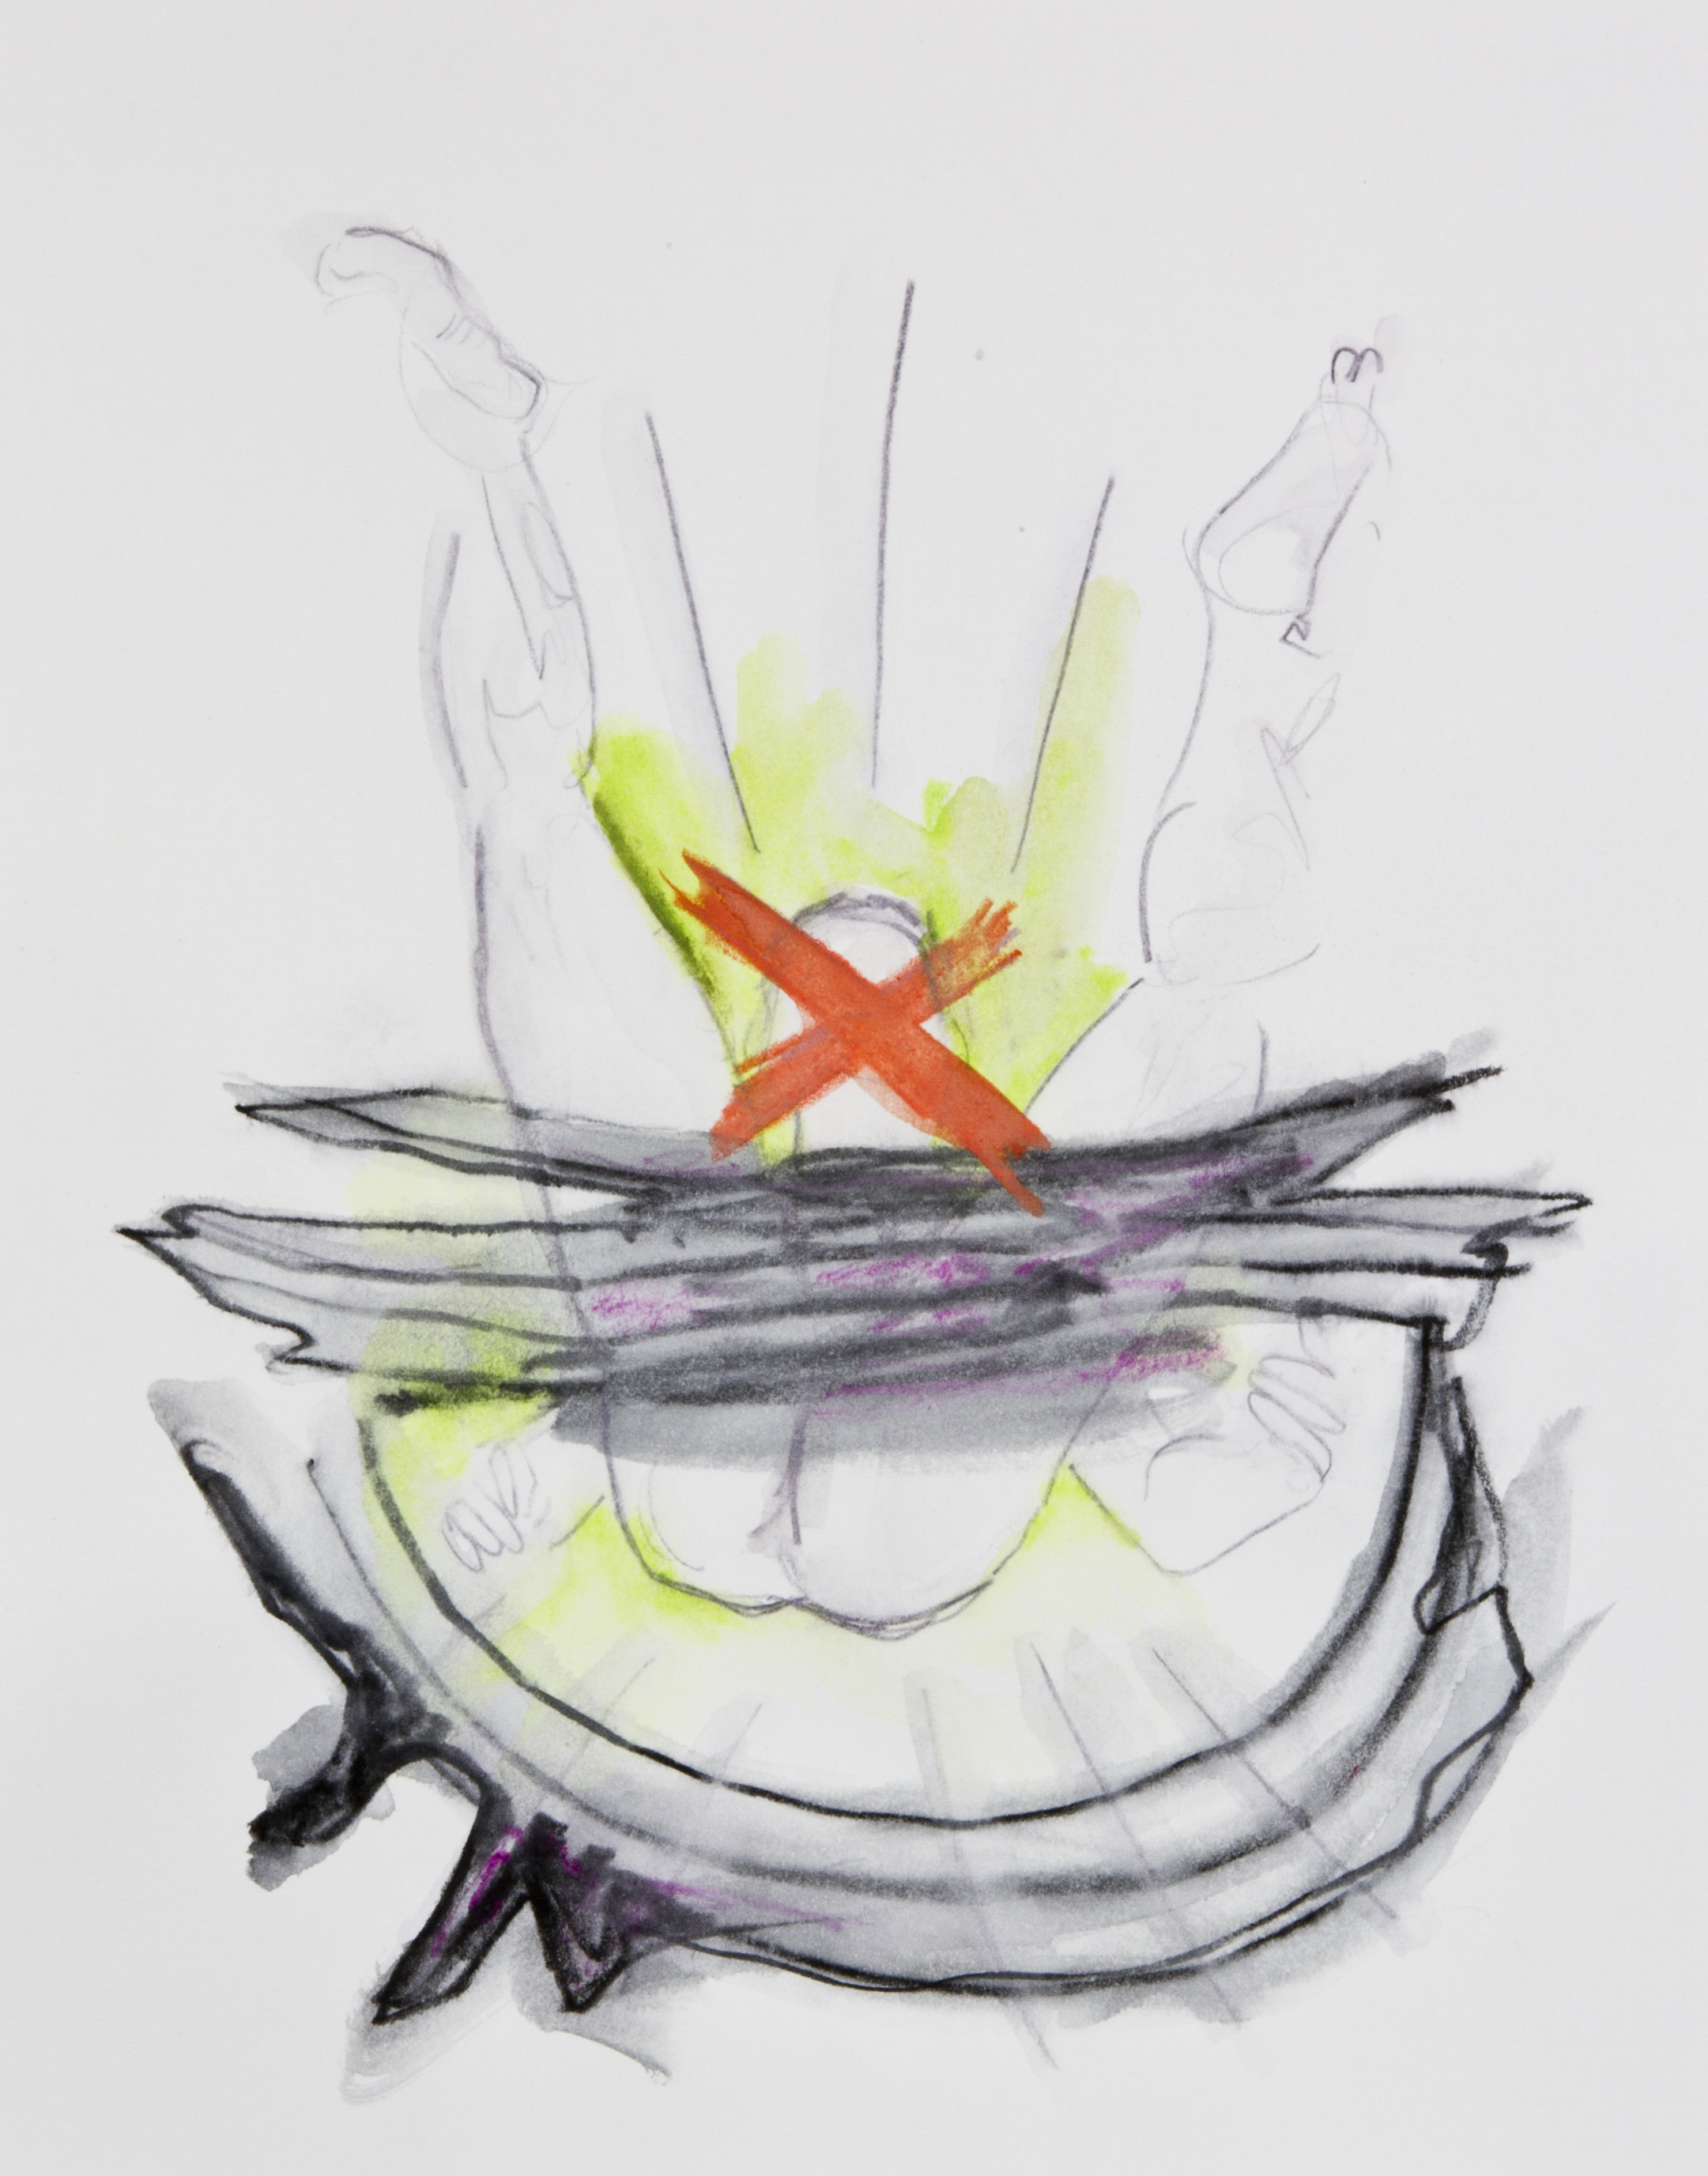 X Display, 2013, graphite, crayon and watercolor pencil on paper, 11x14 inches